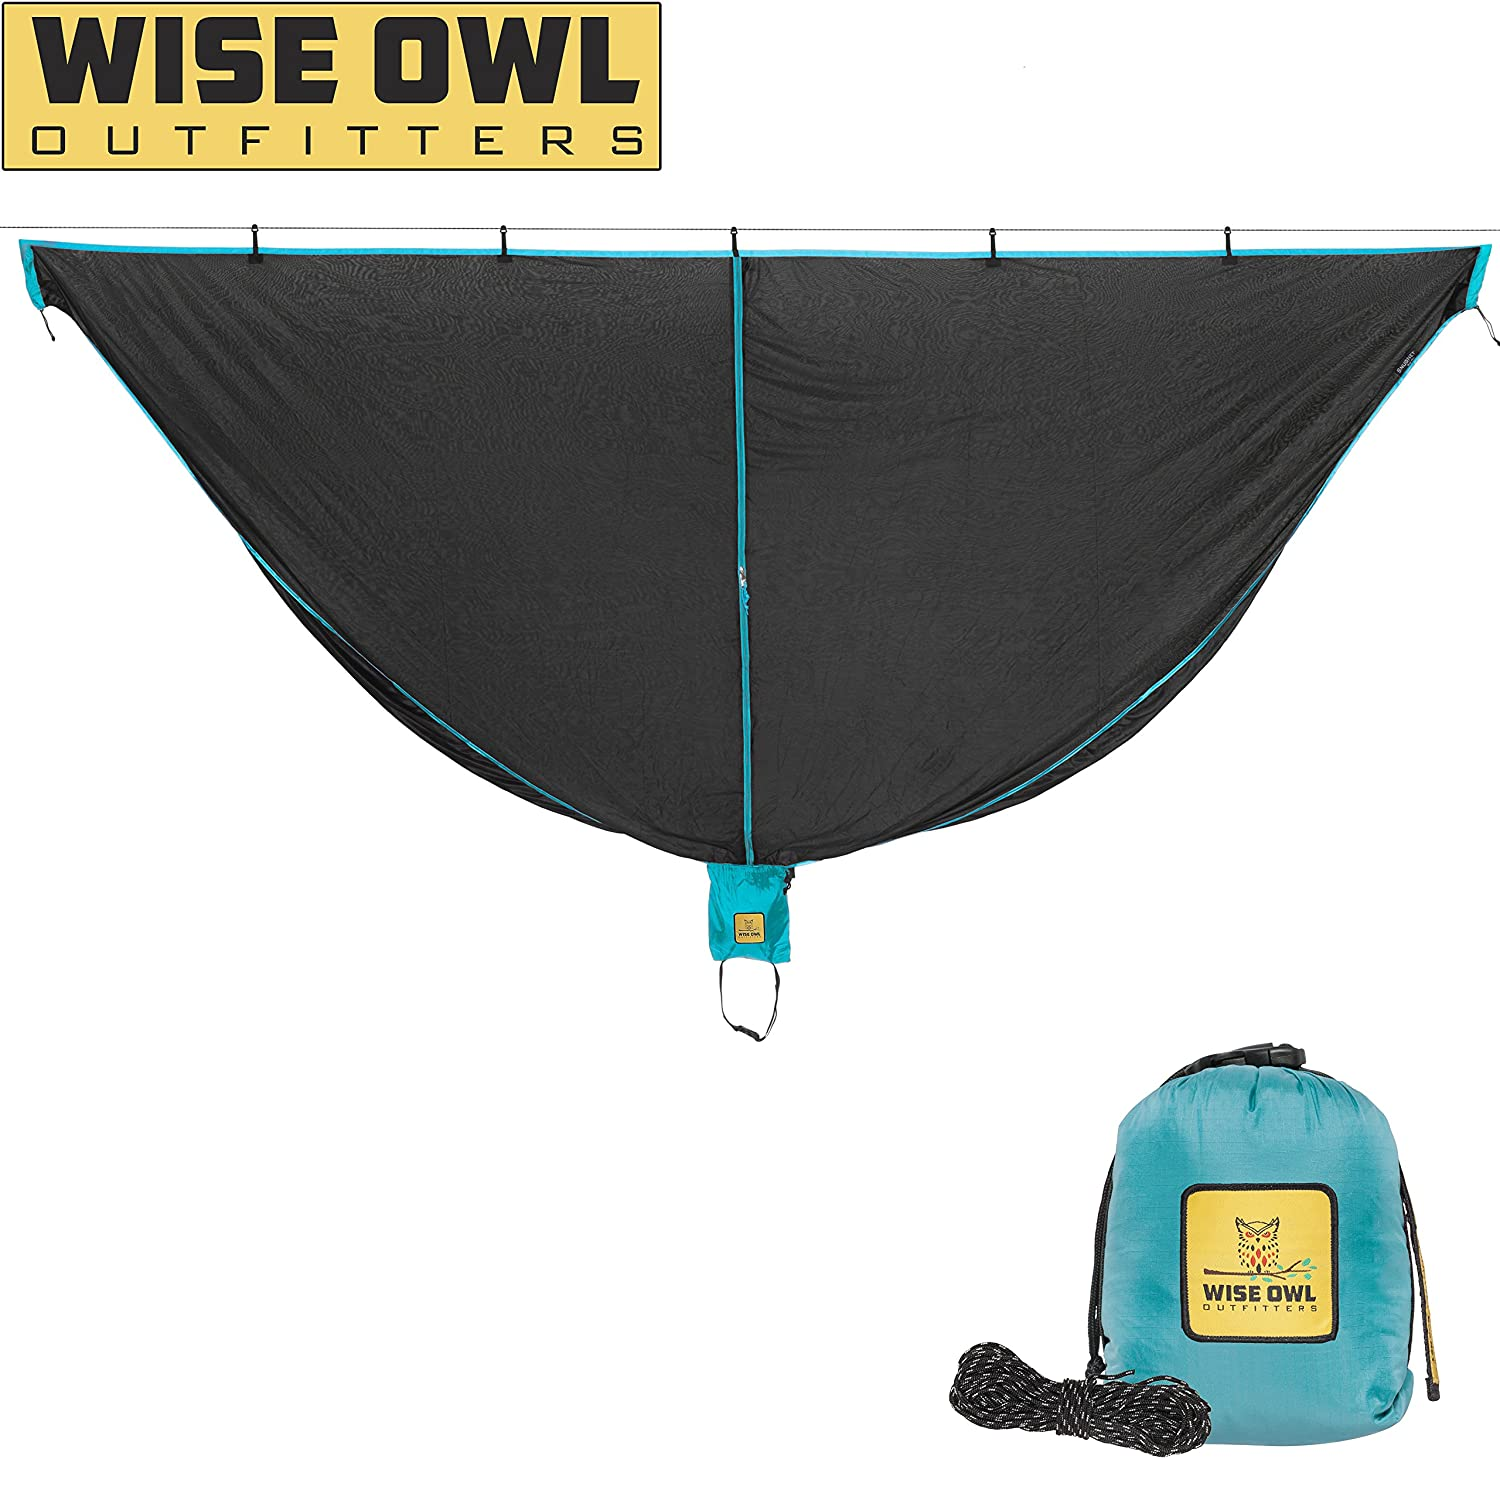 Marvelous Wise Owl Outfitters Hammock Bug Net   The SnugNet Mosquito Net For Bugs    Best Premium Quality Mesh Netting Is A Guardian For Mosquitos, ...